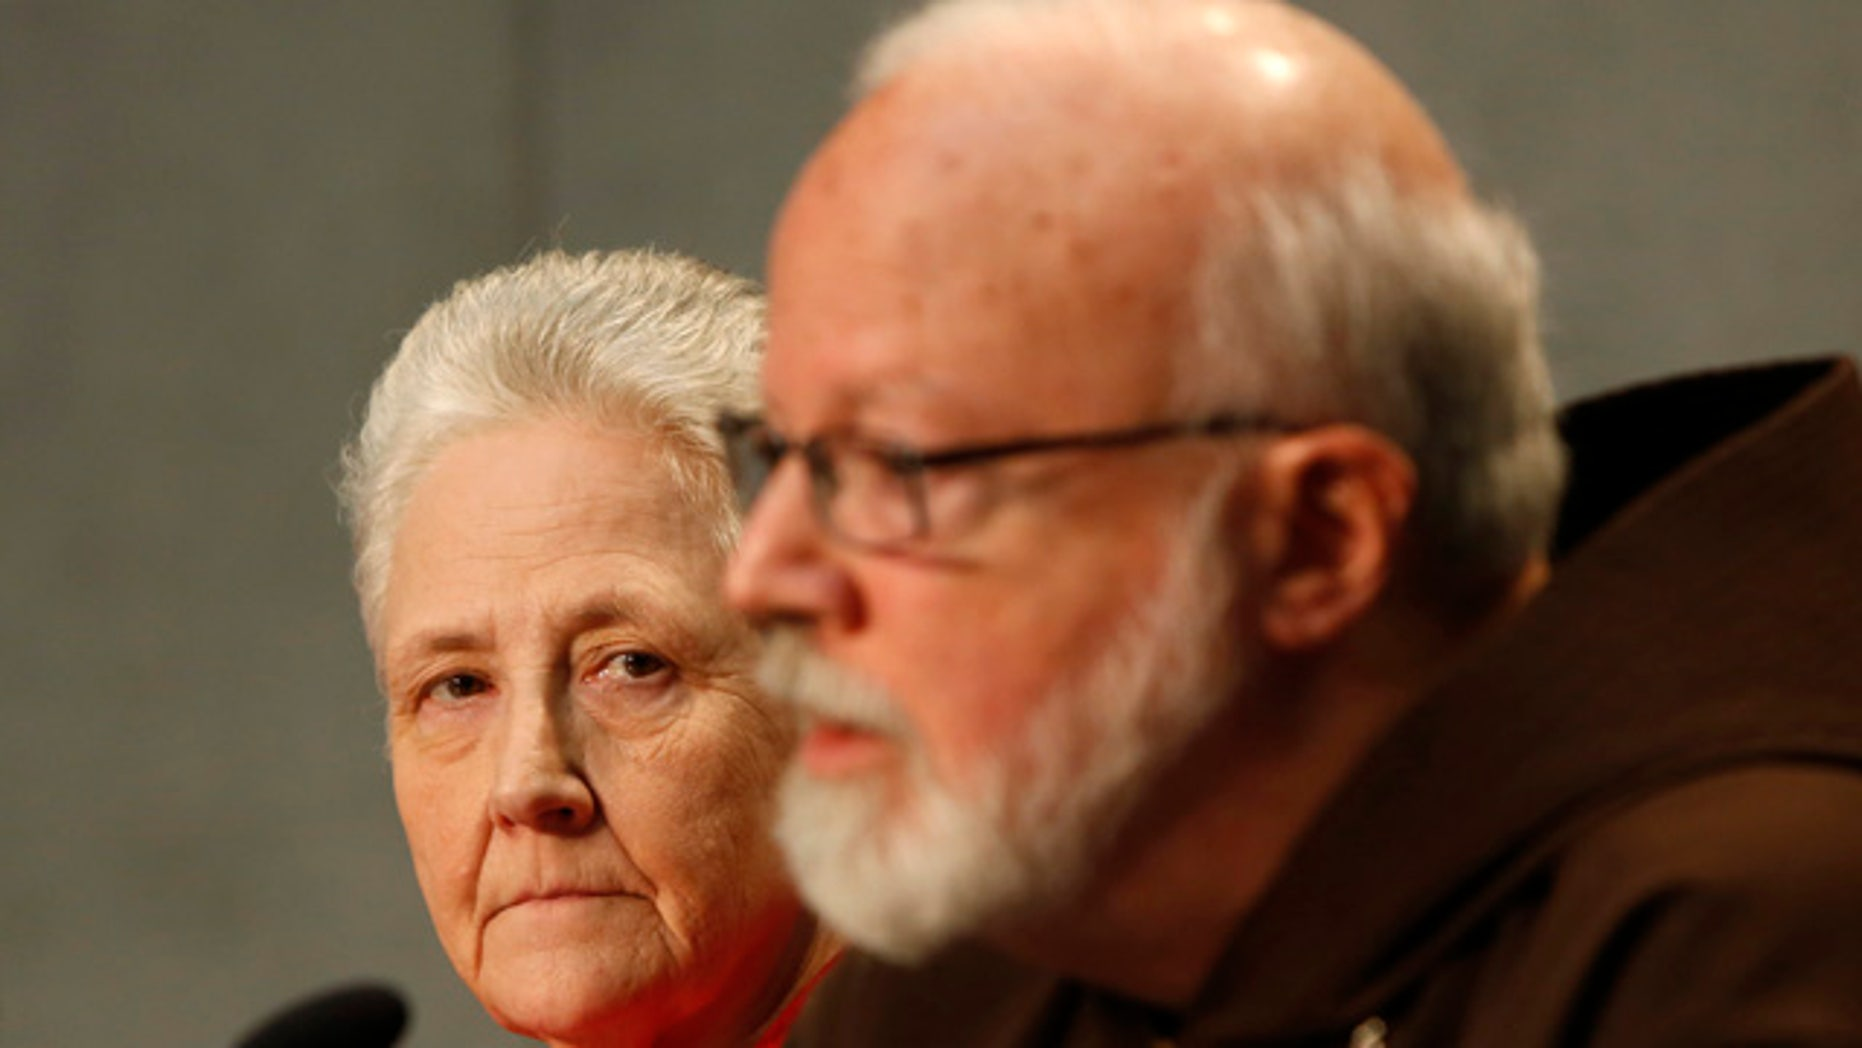 May 3, 2014: Cardinal Sean O'Malley, the archbishop of Boston, right, and Marie Collins attend a press conference at the Vatican. Members of Pope Francis' sexual abuse advisory board say they will develop specific protocols to hold bishops and other church authorities accountable if they fail to report suspected abuse or protect children from pedophile priests. (AP Photo/Riccardo De Luca)